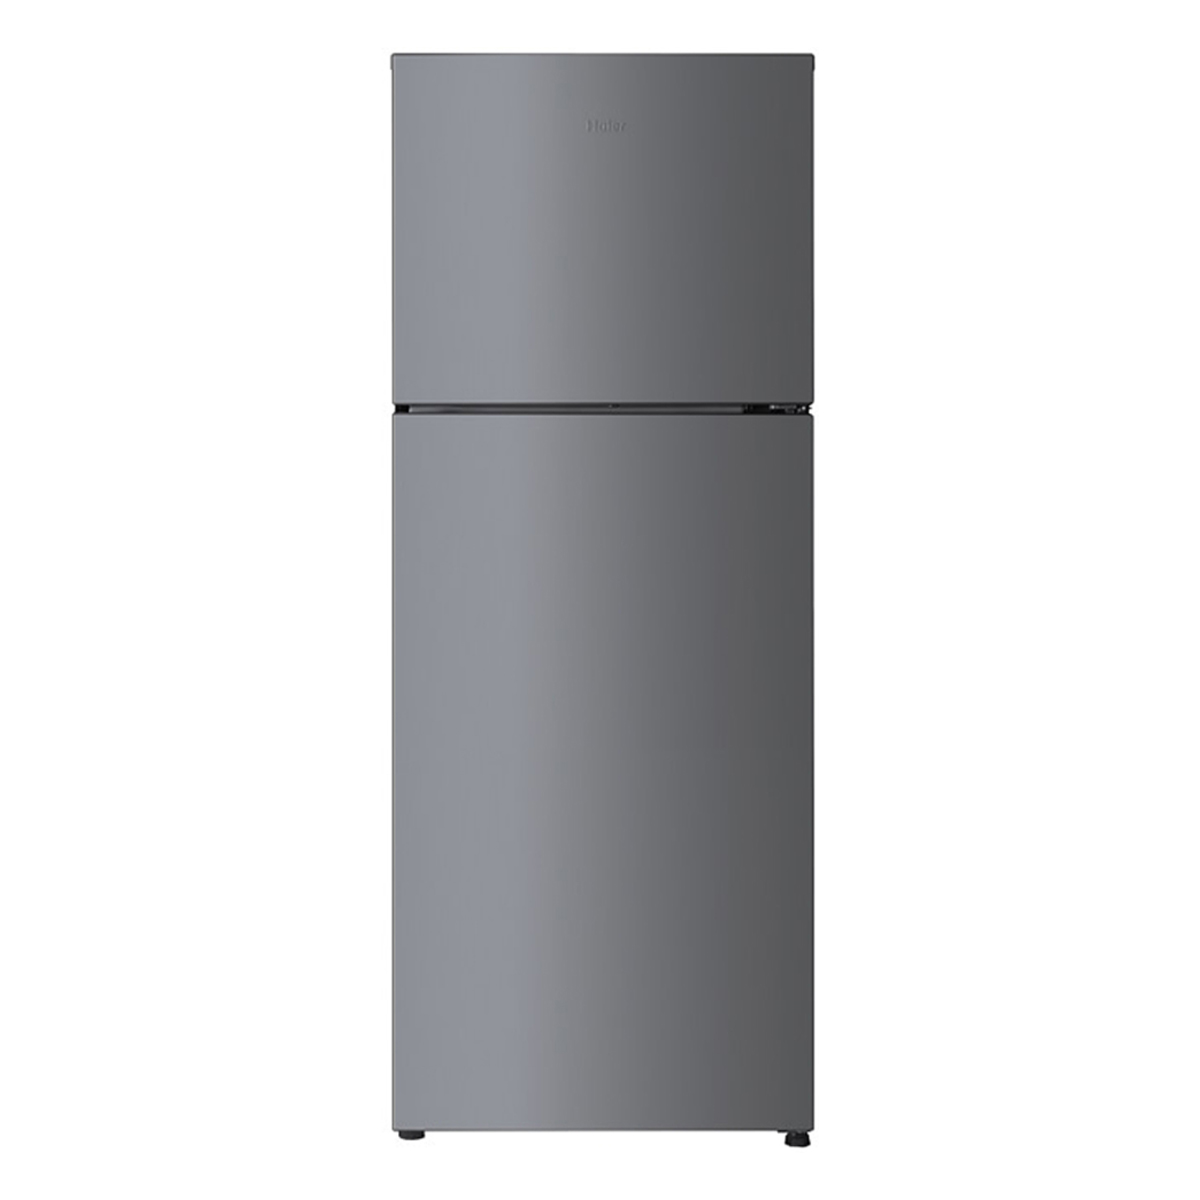 Haier HRF-224FS2 Top Mount Fridge